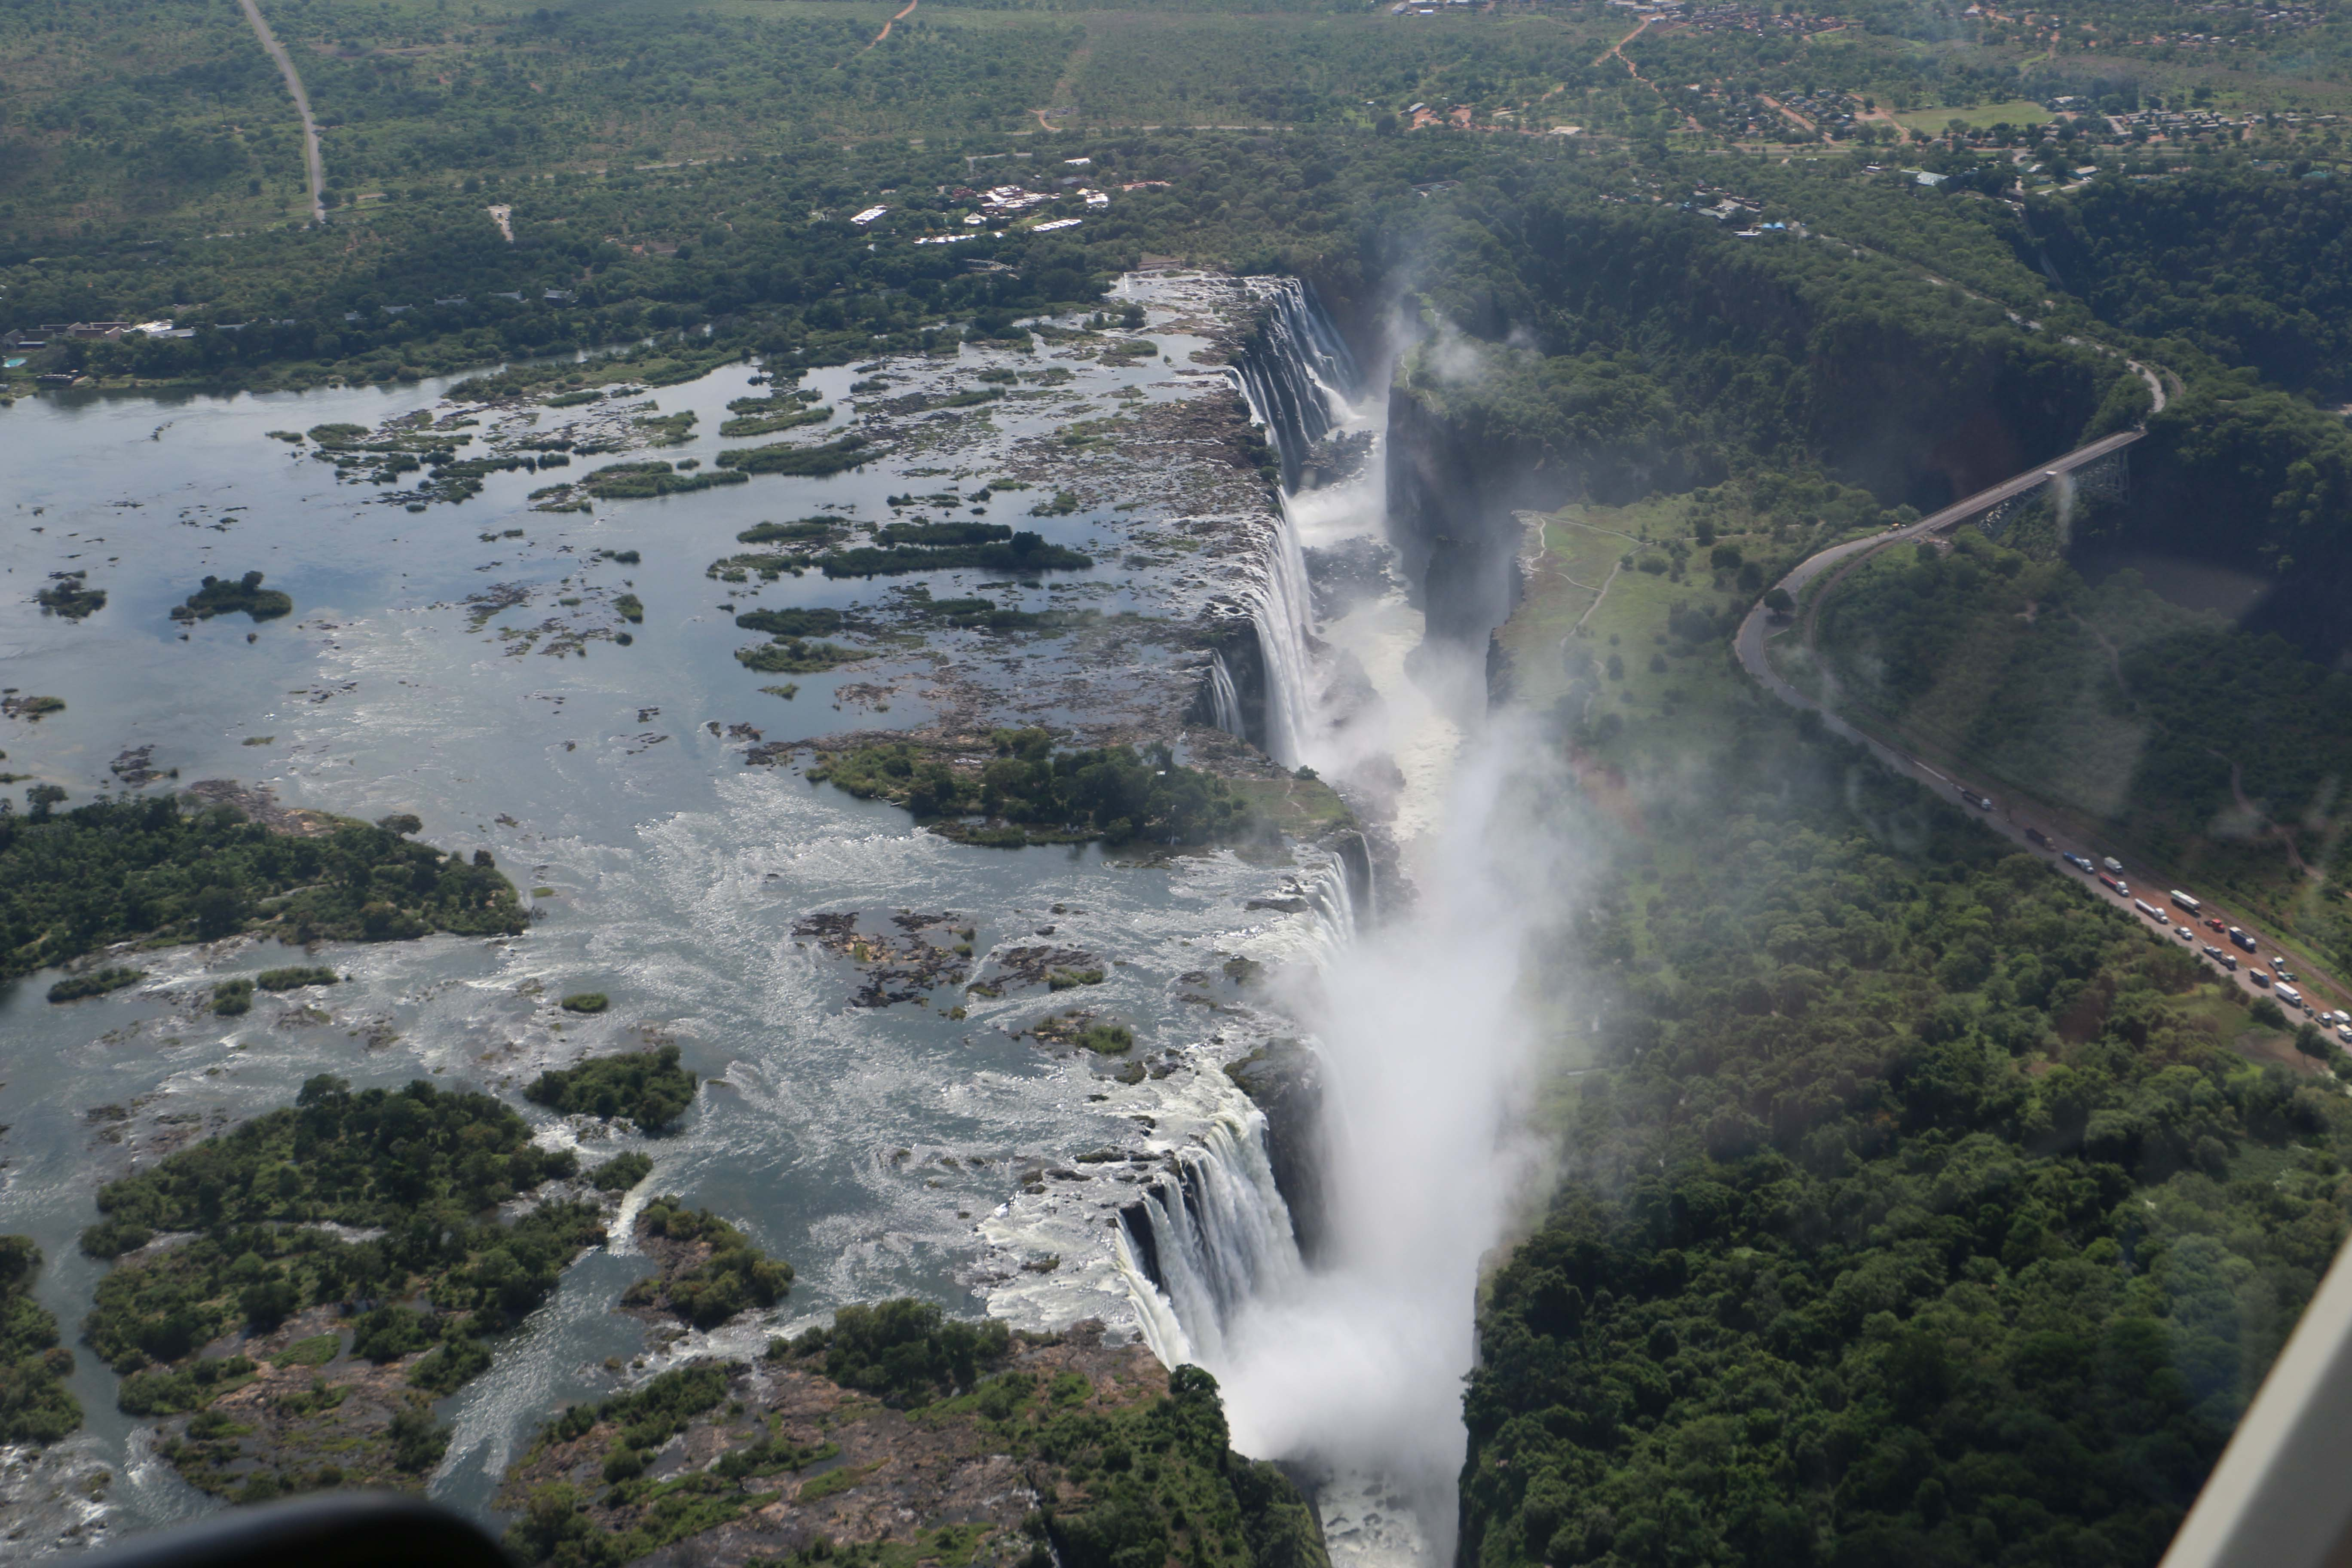 Aerial view of the Victoria Falls Gorge